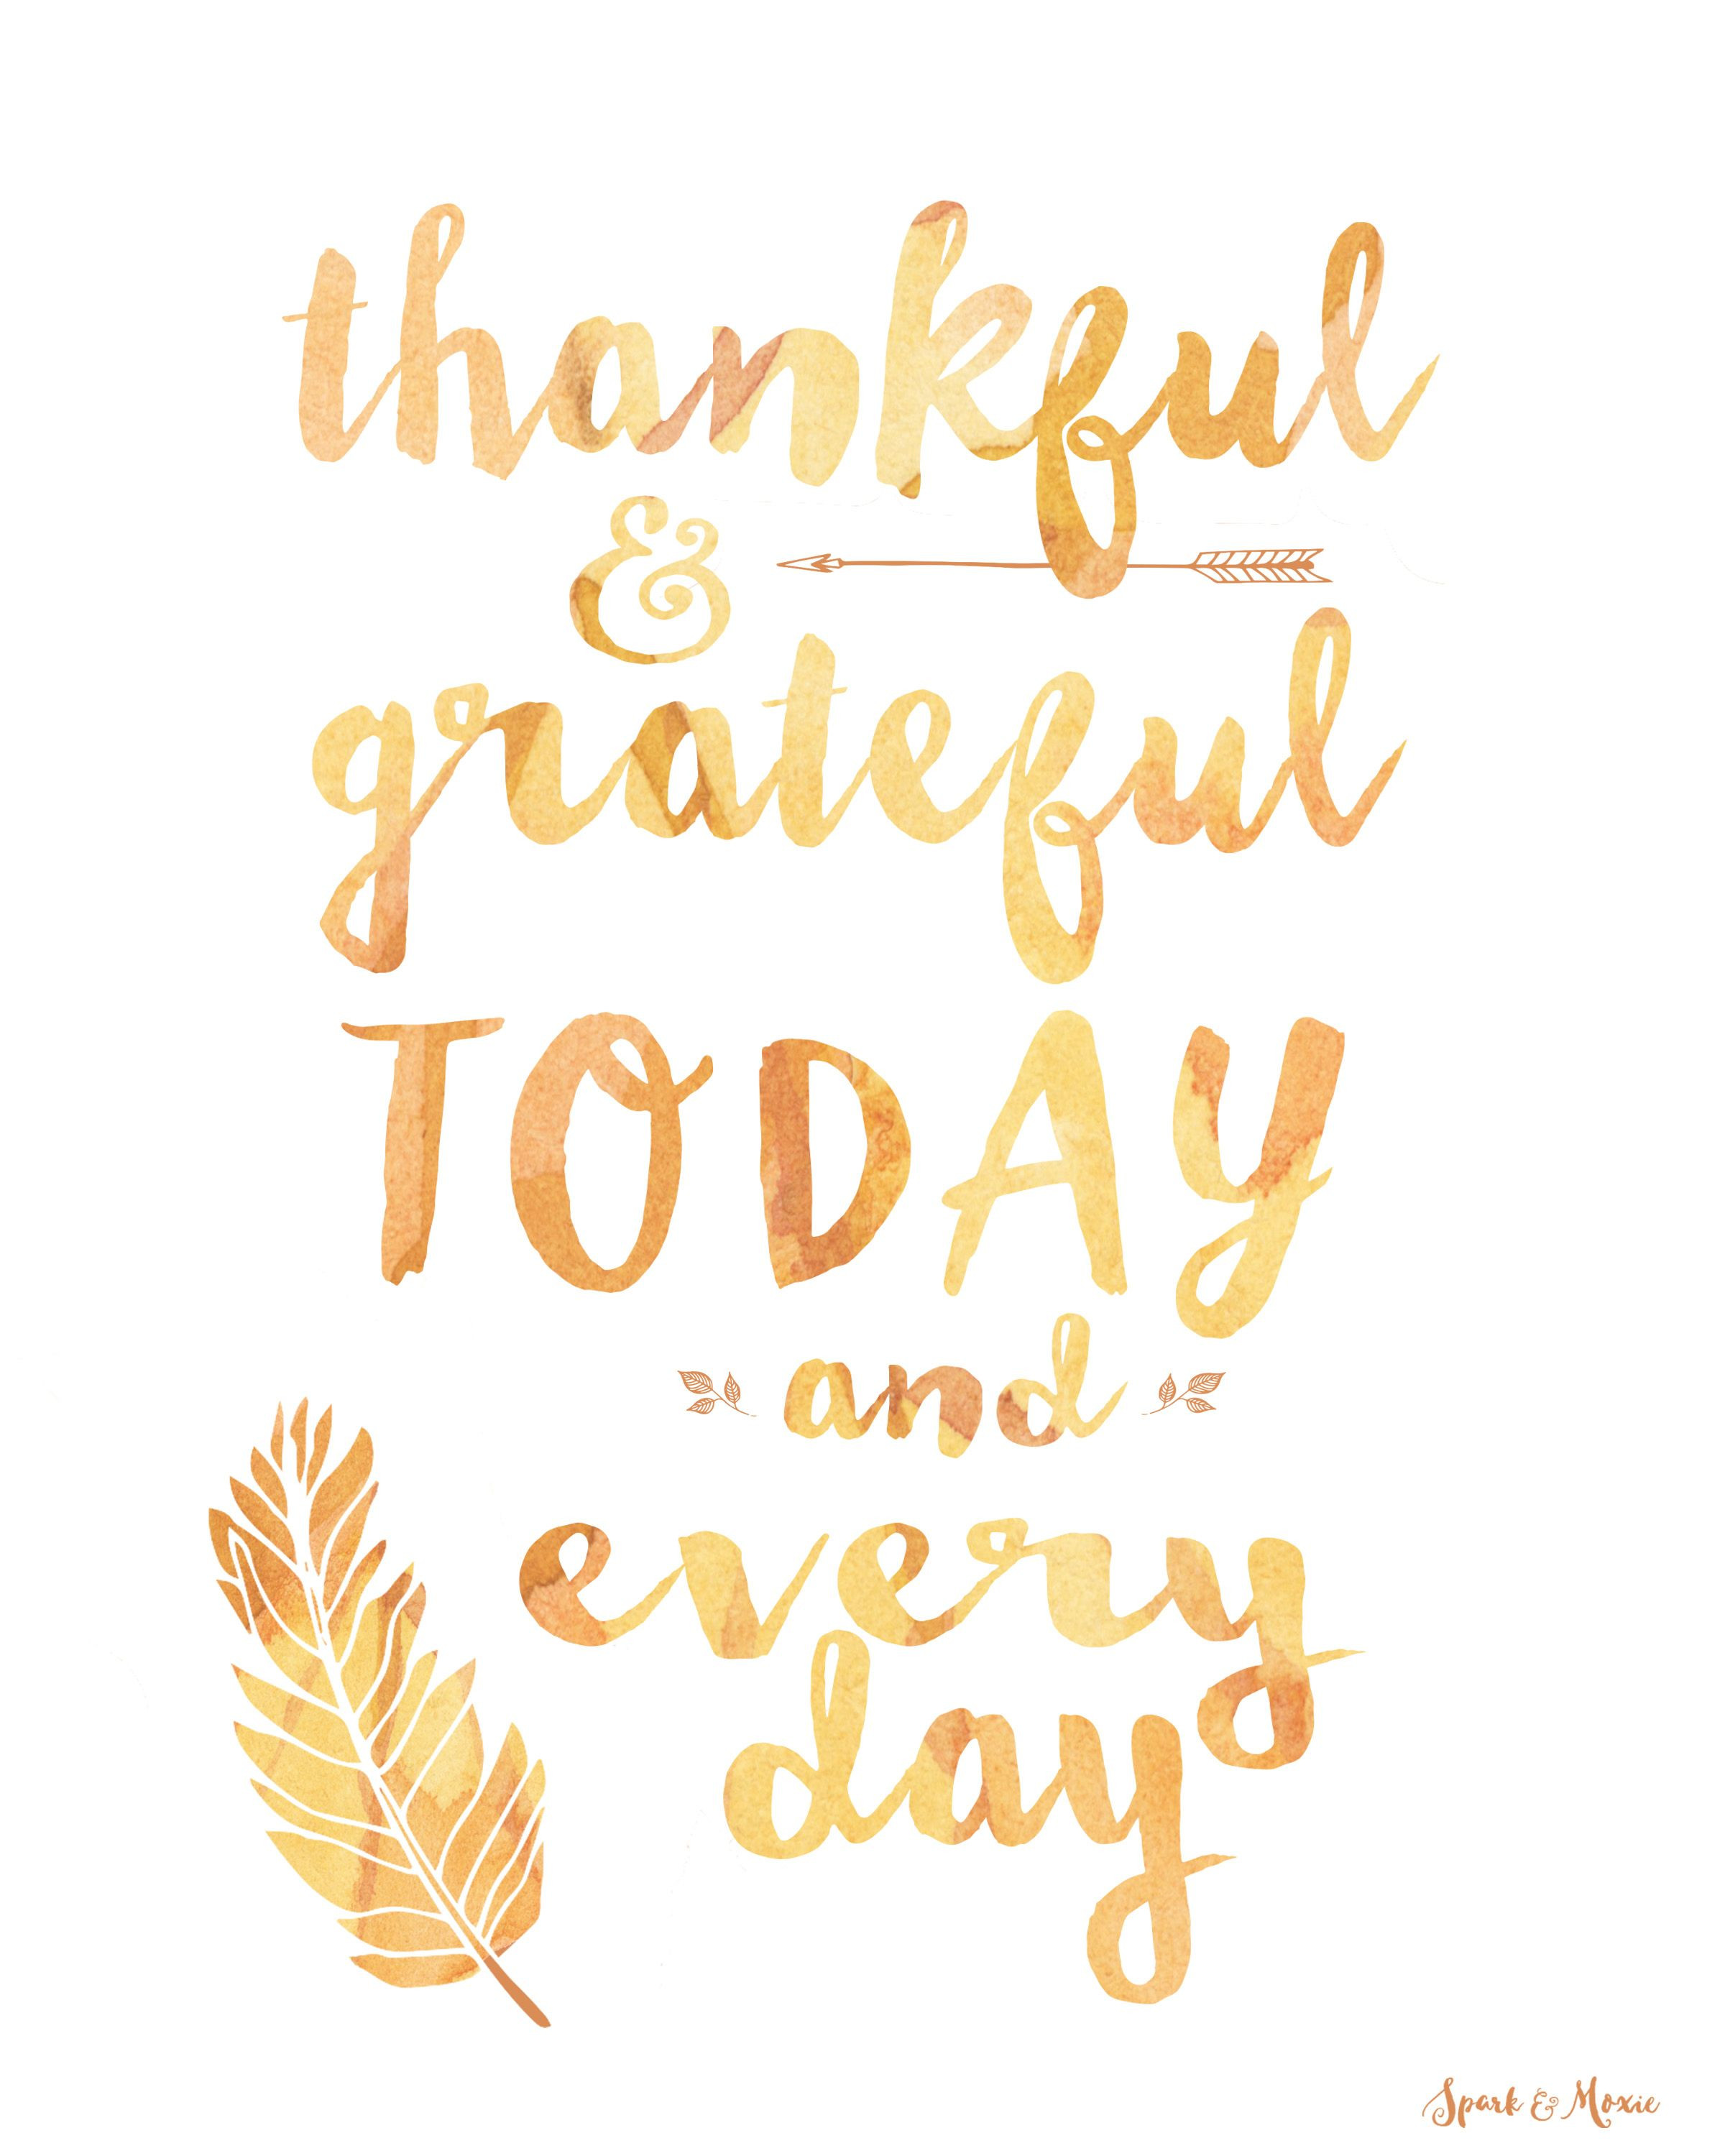 Happy Thanksgiving Pics And Quotes  17 Funny Happy Thanksgiving Quotes for Friends and